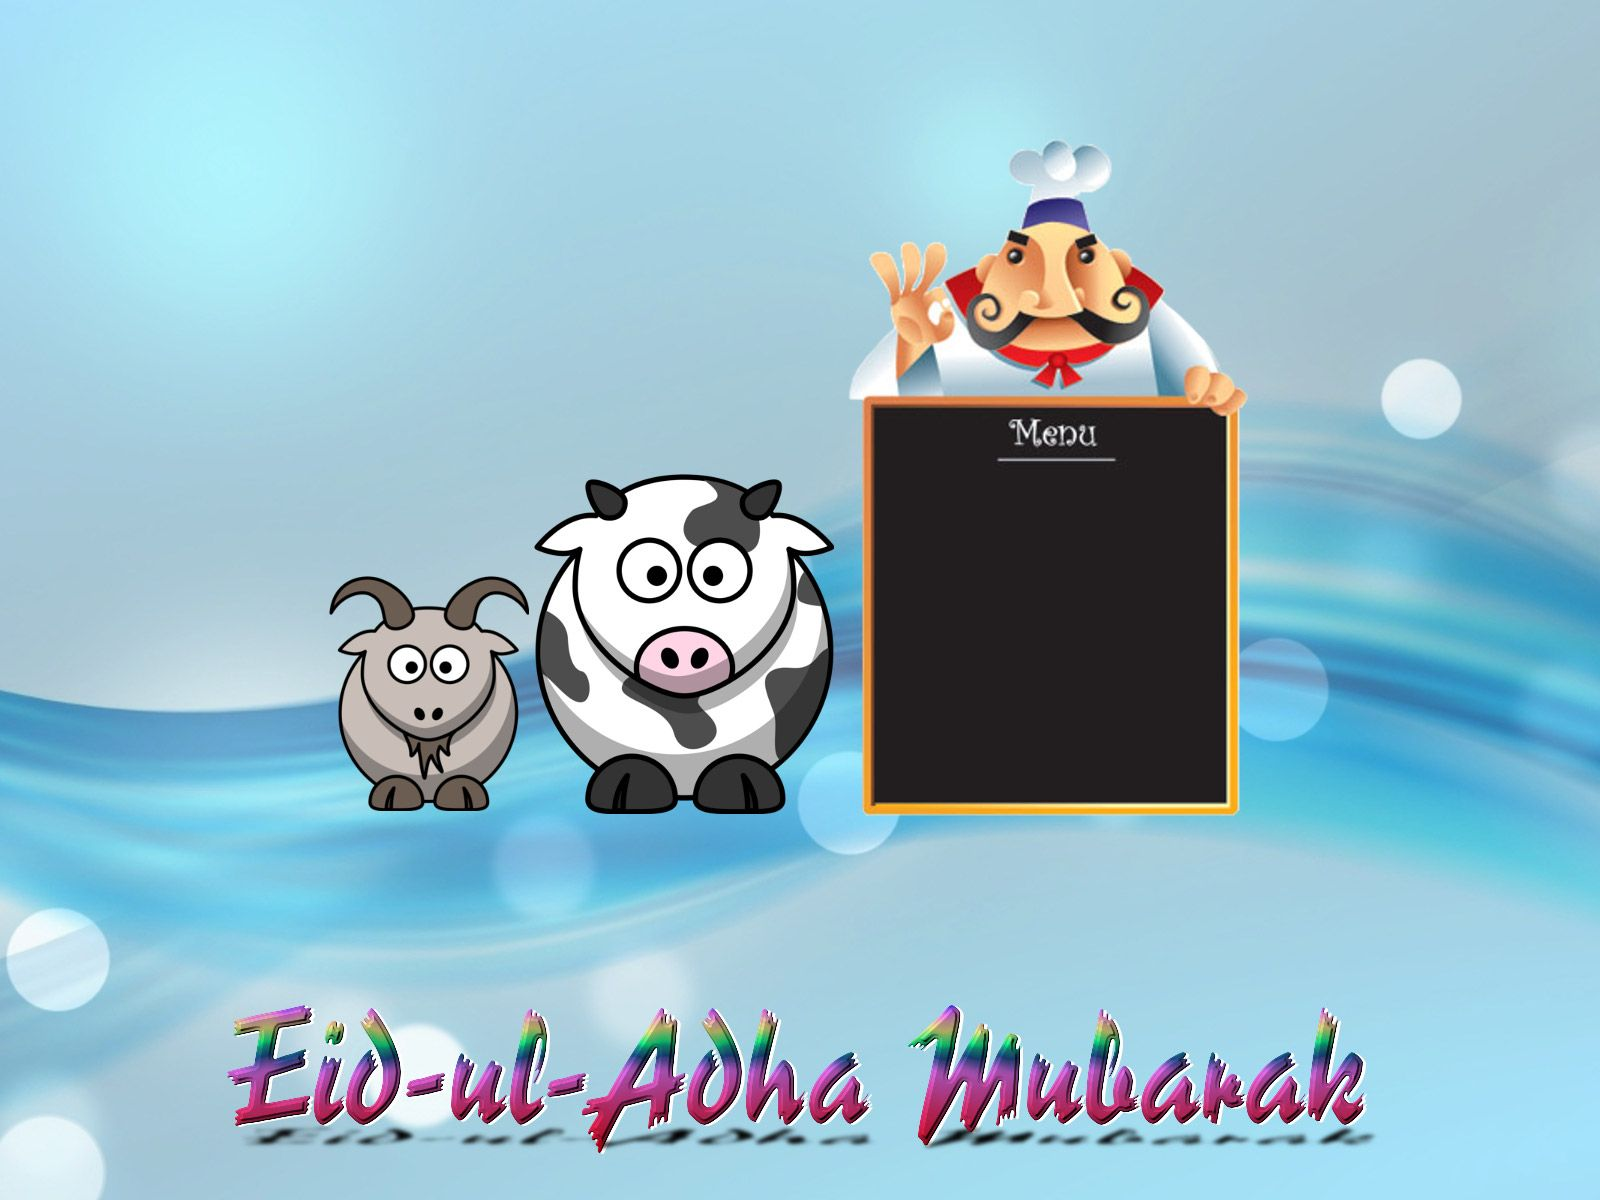 What Is Eid Ul Adha - Eid Ul Adha Virtues And Importance Of This Occasion Quran For Kids - And commitment of allah's orders.